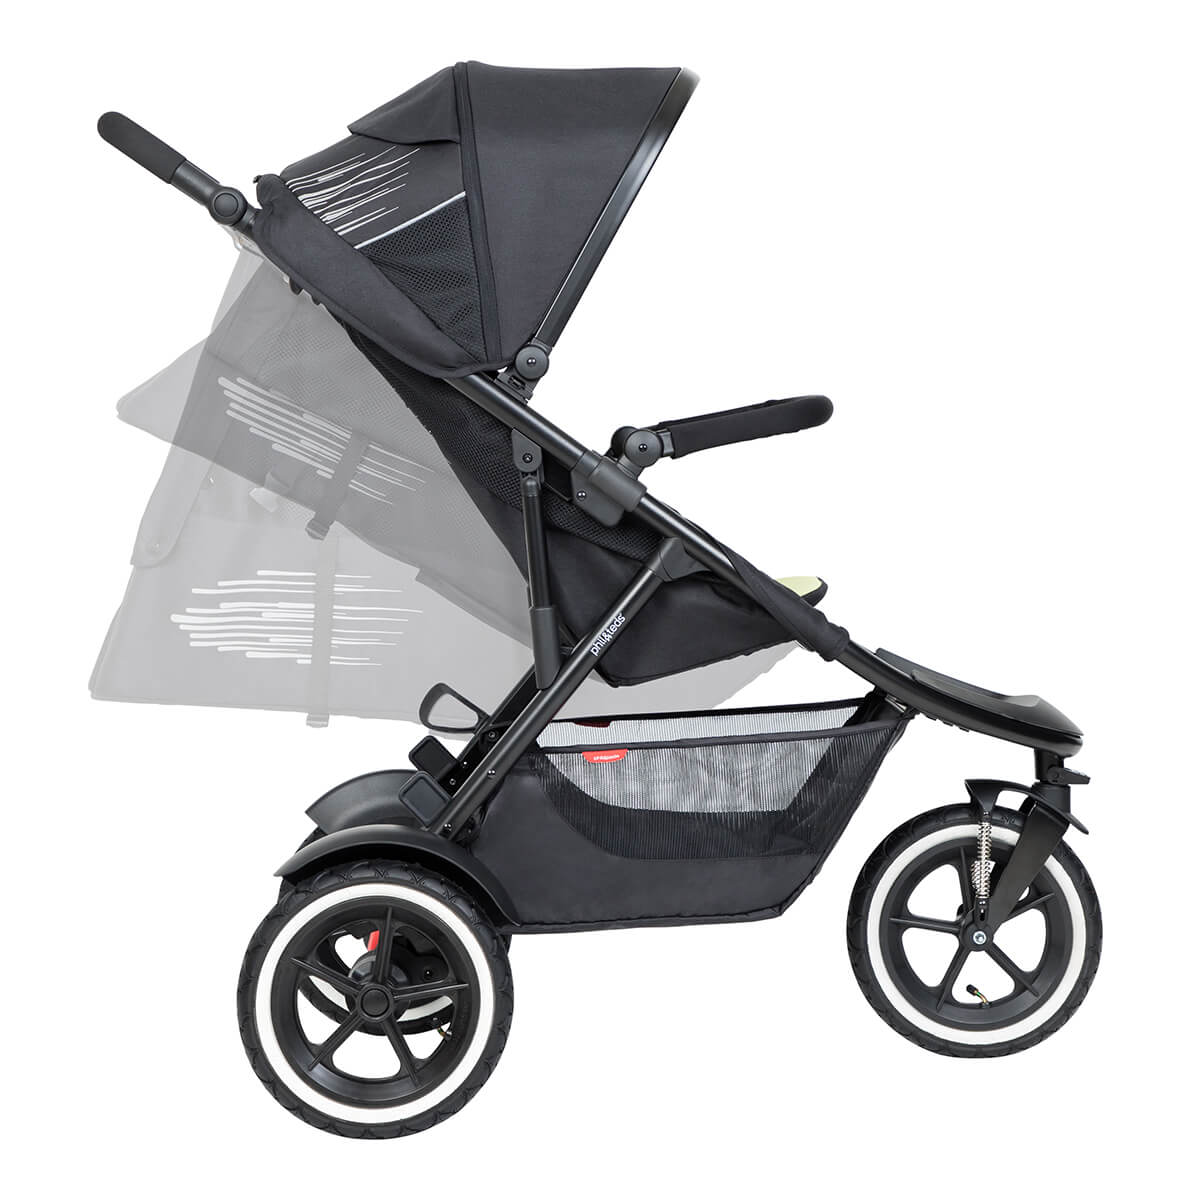 https://cdn.accentuate.io/4509527965784/19272668184664/philteds-sport-poussette-can-recline-in-multiple-angles-including-full-recline-for-newborn-baby-v1626484397638.jpg?1200x1200